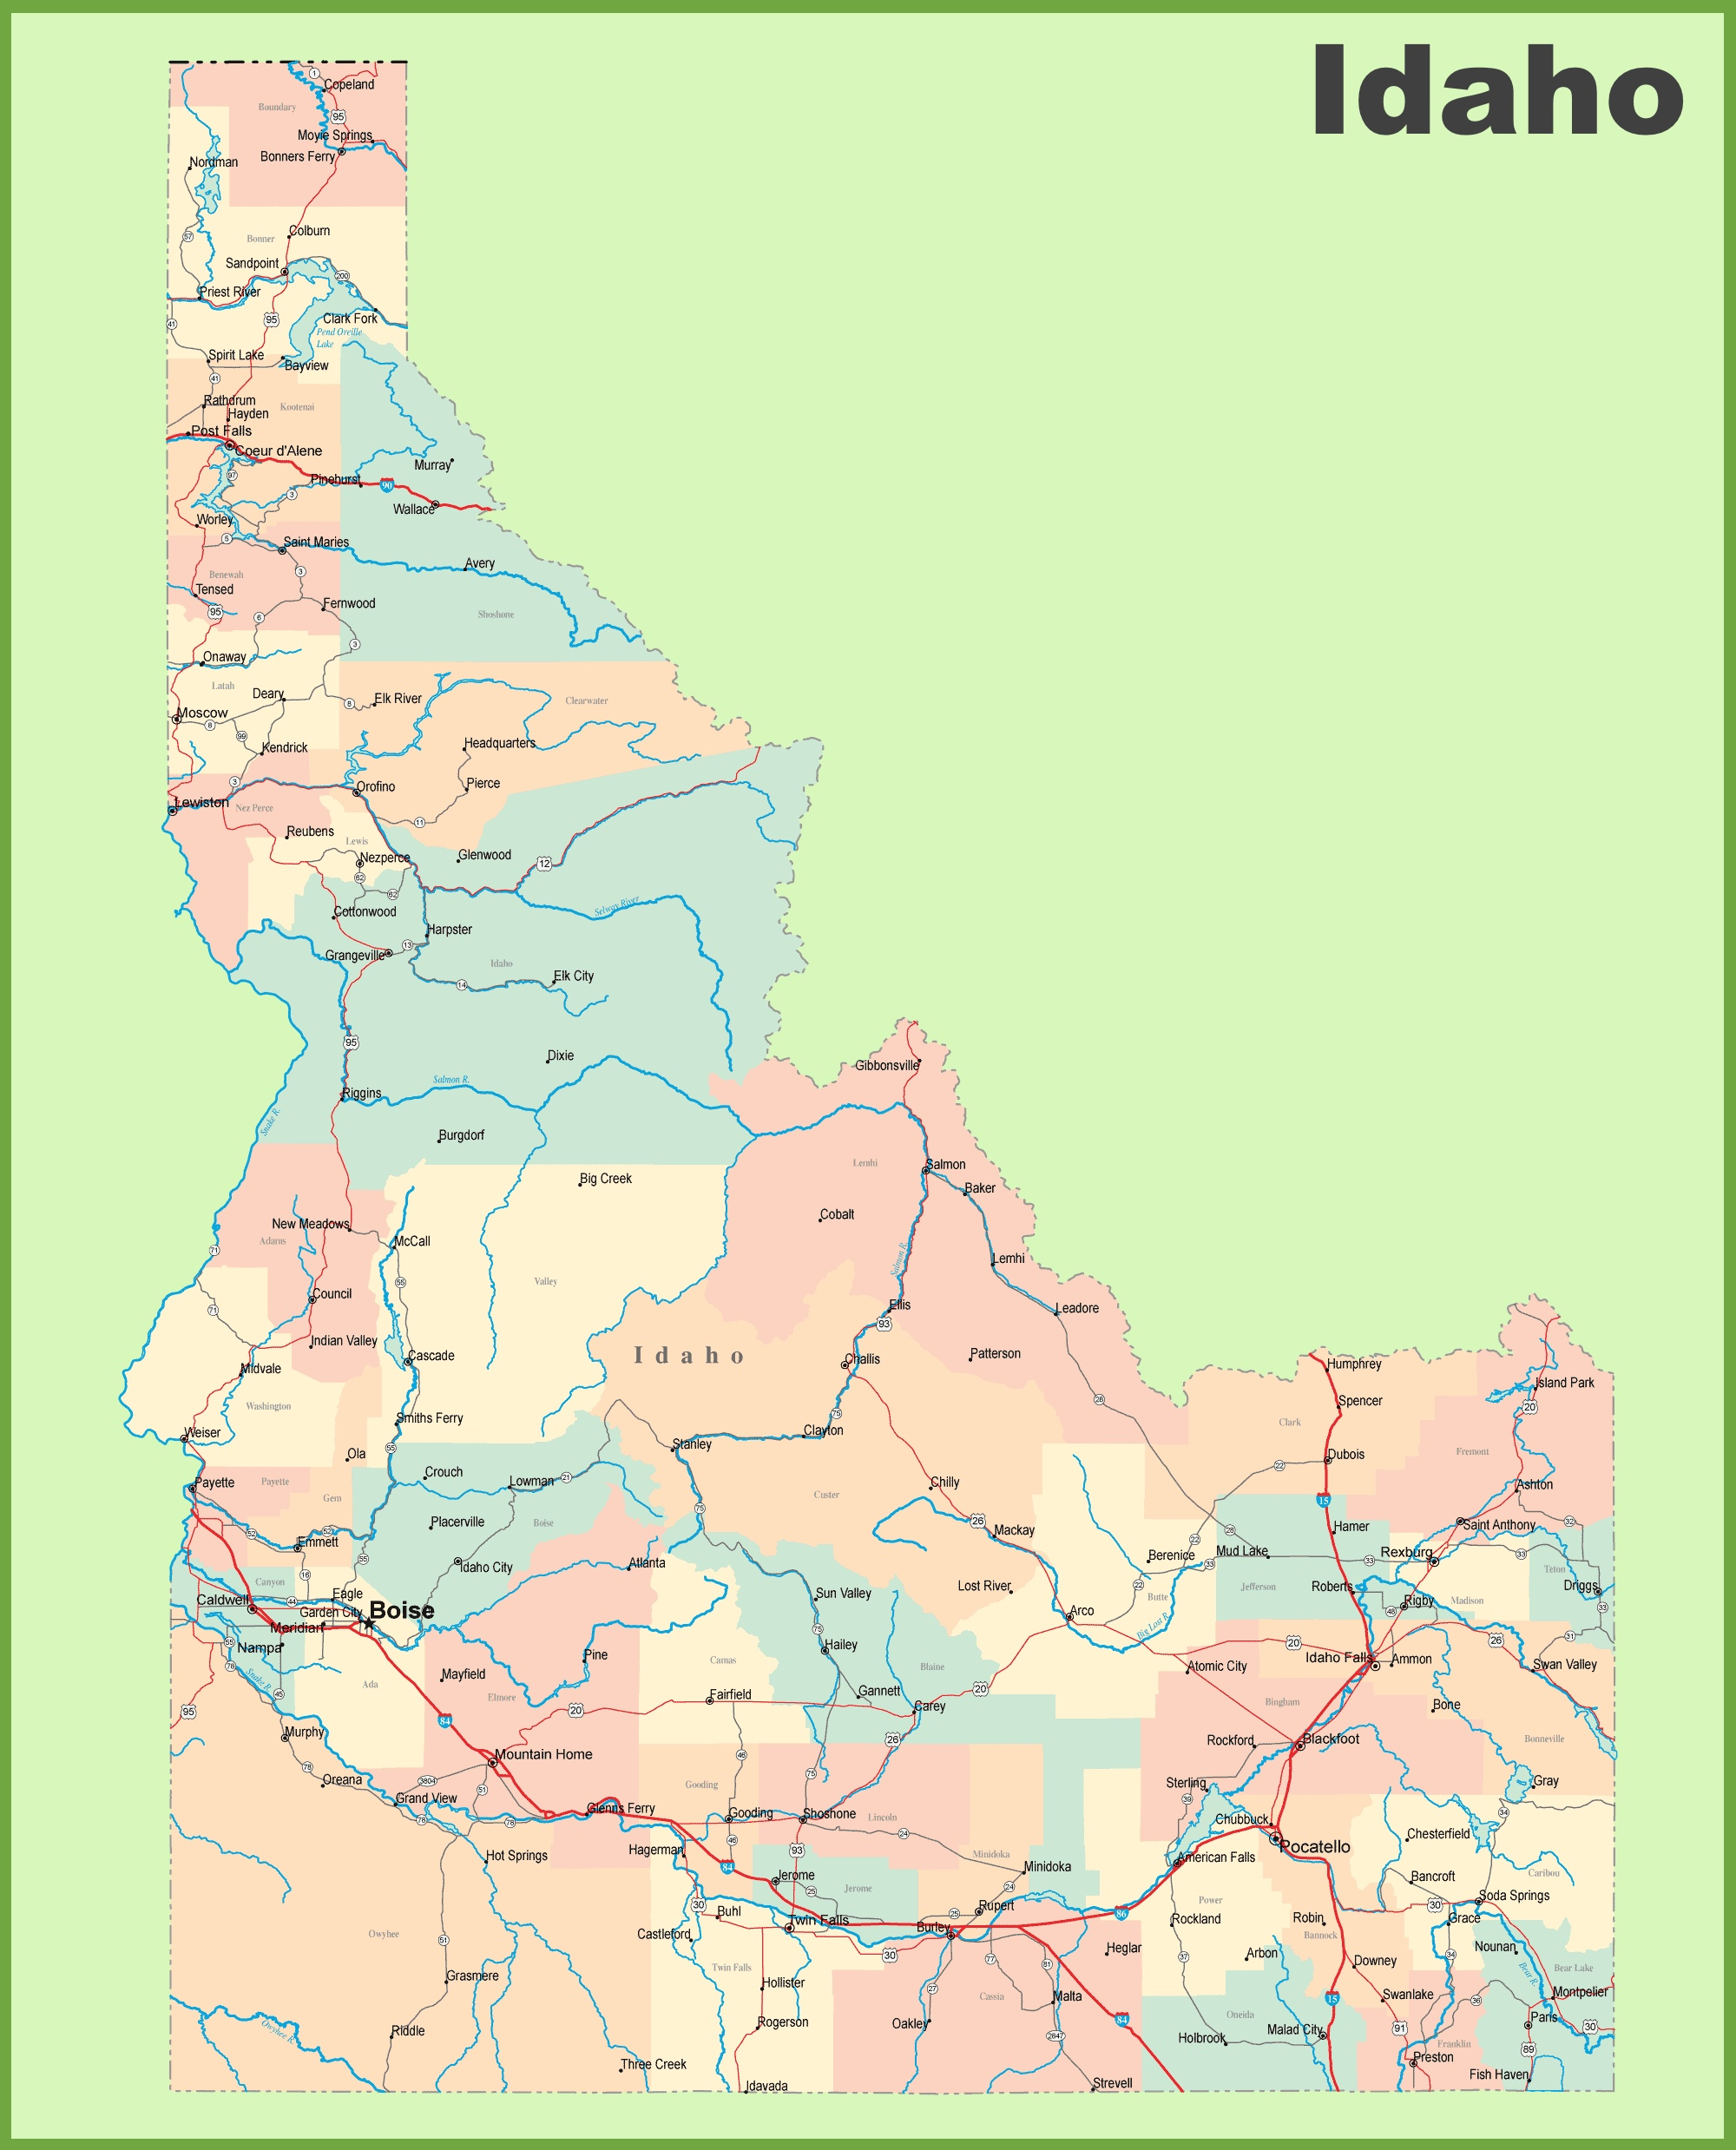 Road Map Of Idaho With Cities And Towns